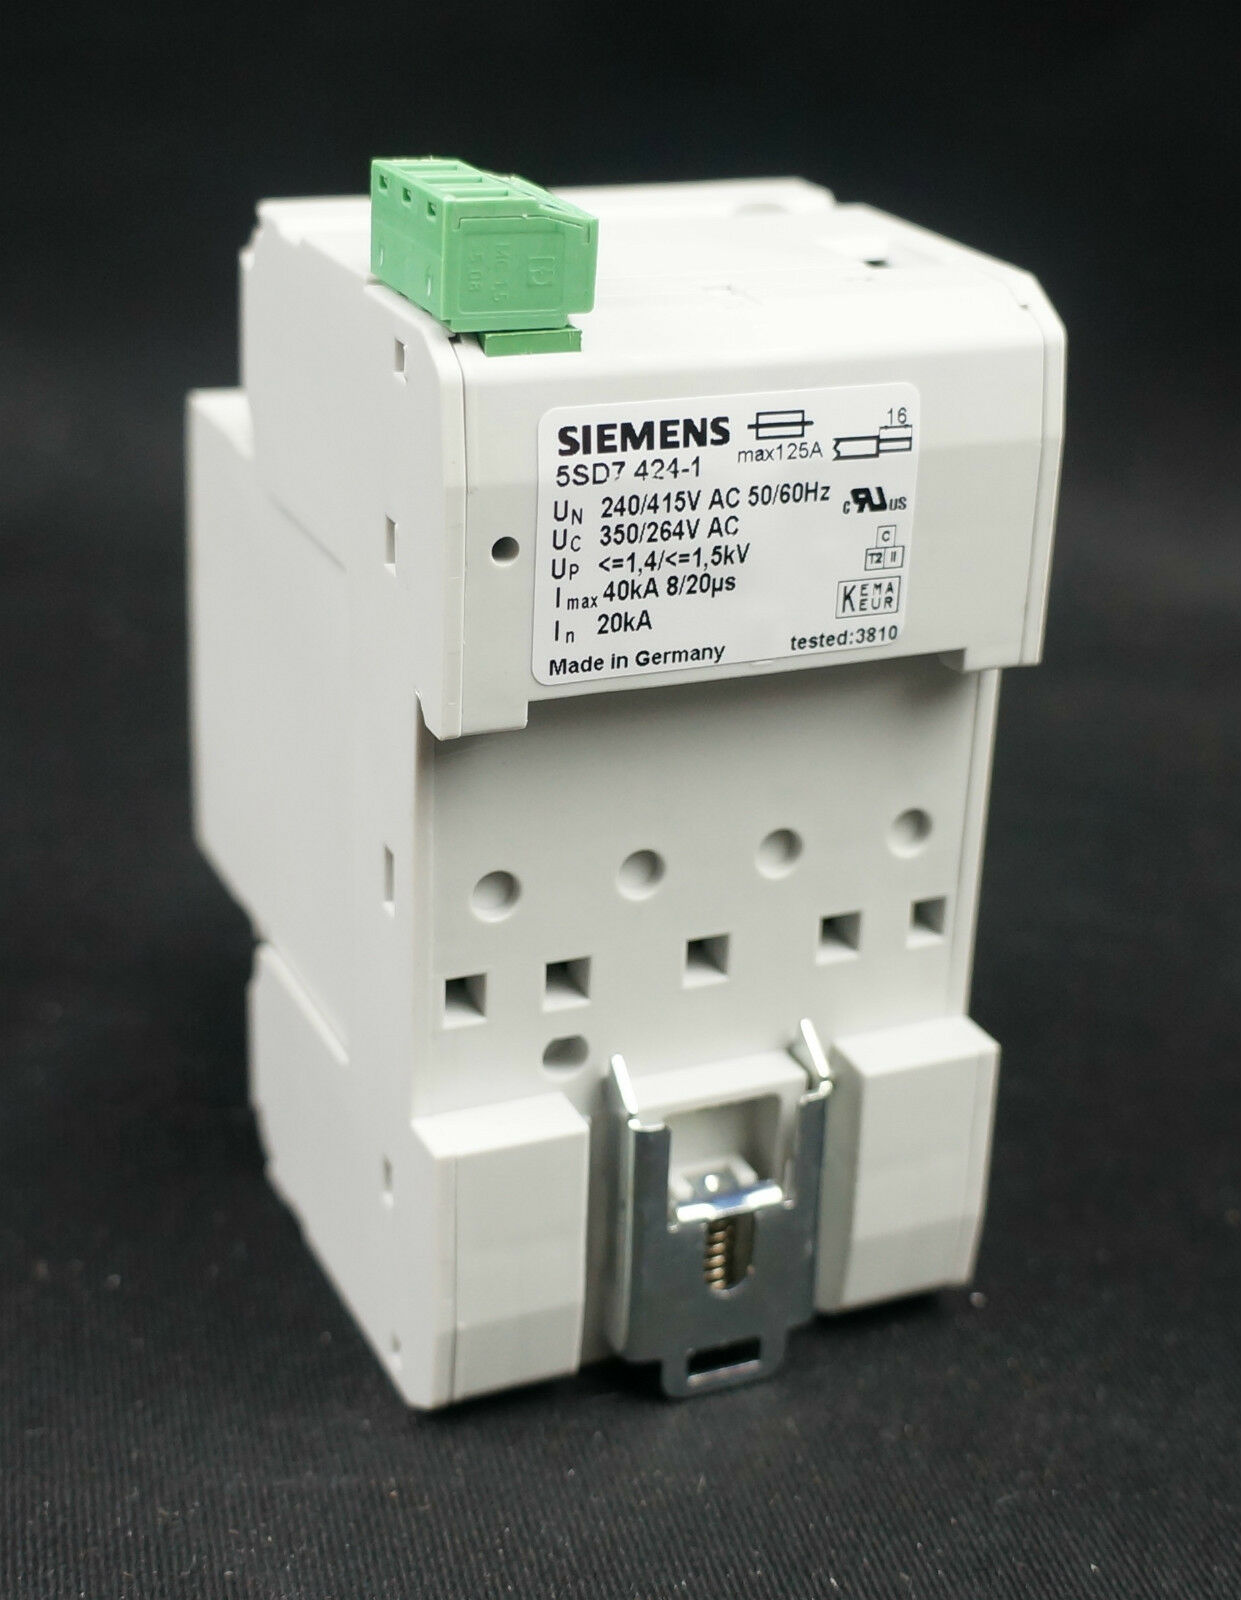 Siemens 125a 4 Pole Overvoltage Protection Surge Protector Arrester Circuit Breakers Havells Double Mcb Miniature Breaker 5sd7 424 1 Ebay